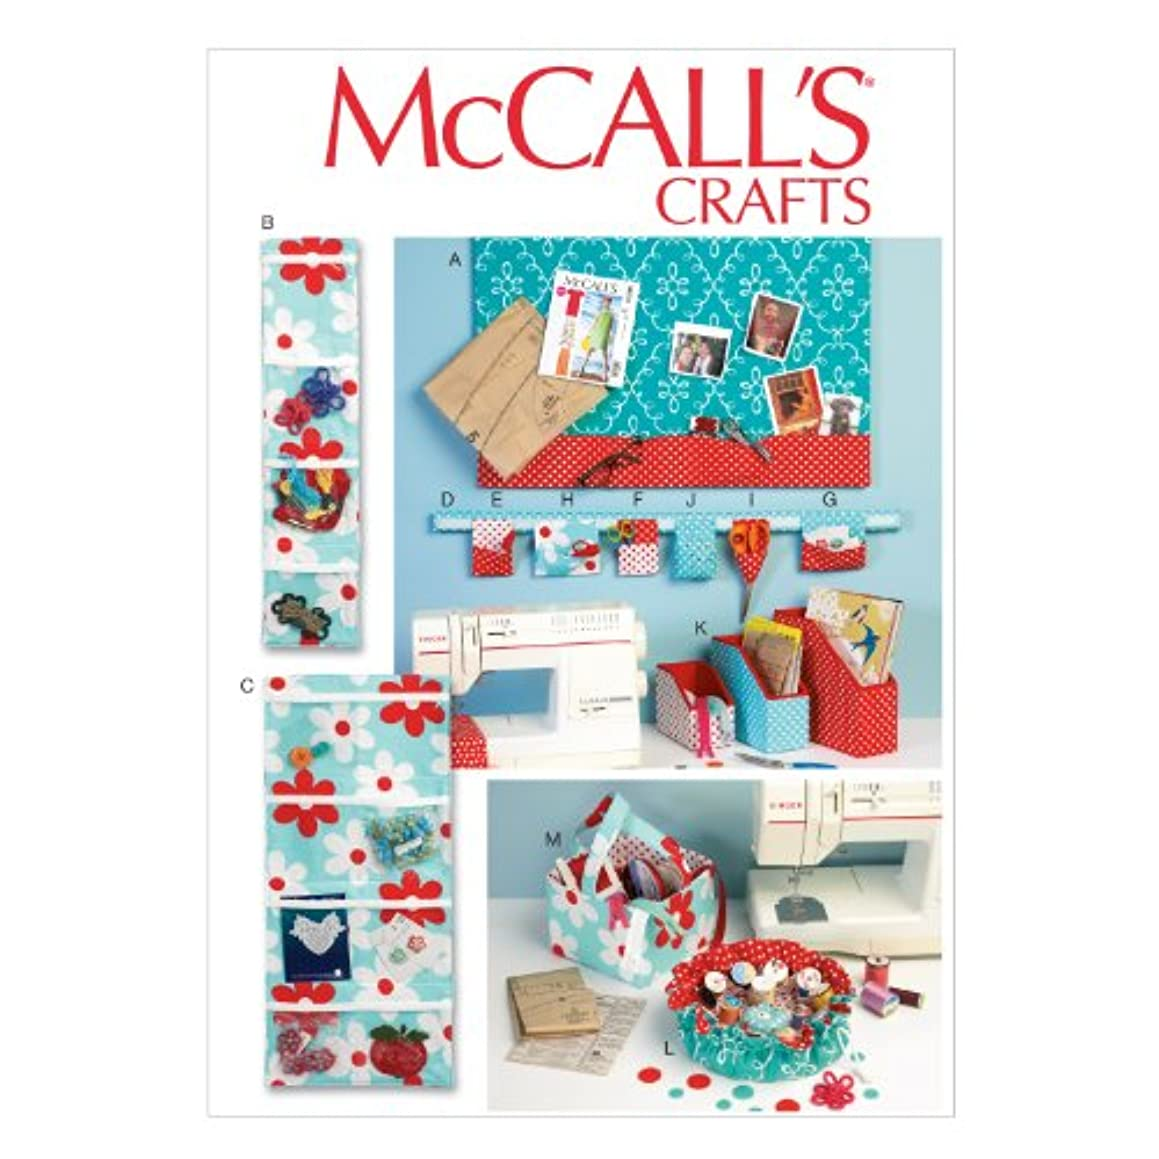 McCall Pattern Company M6909 Organizer and Storage Bins Sewing Template, One Size Only